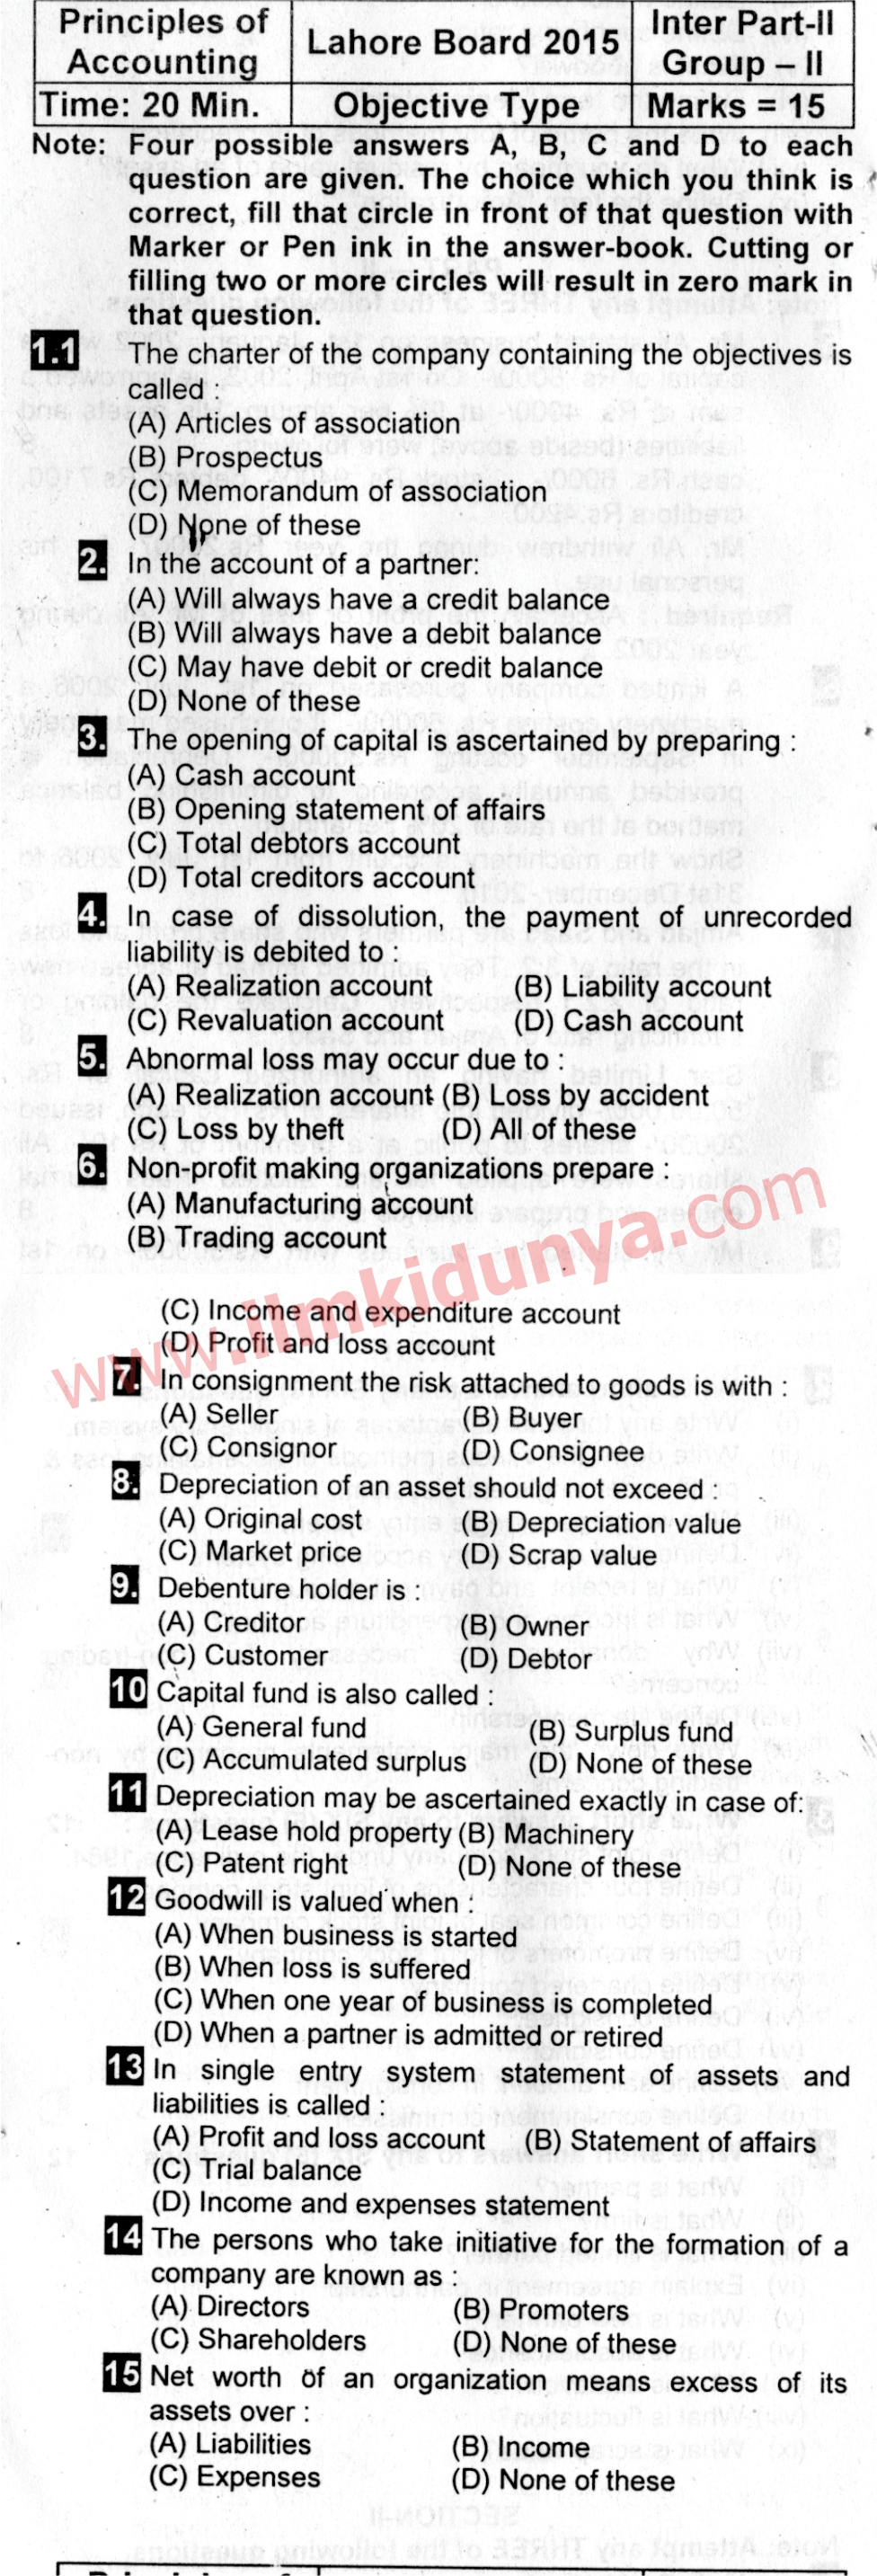 Past Papers 2015 Lahore Board ICom Part 2 Principles of